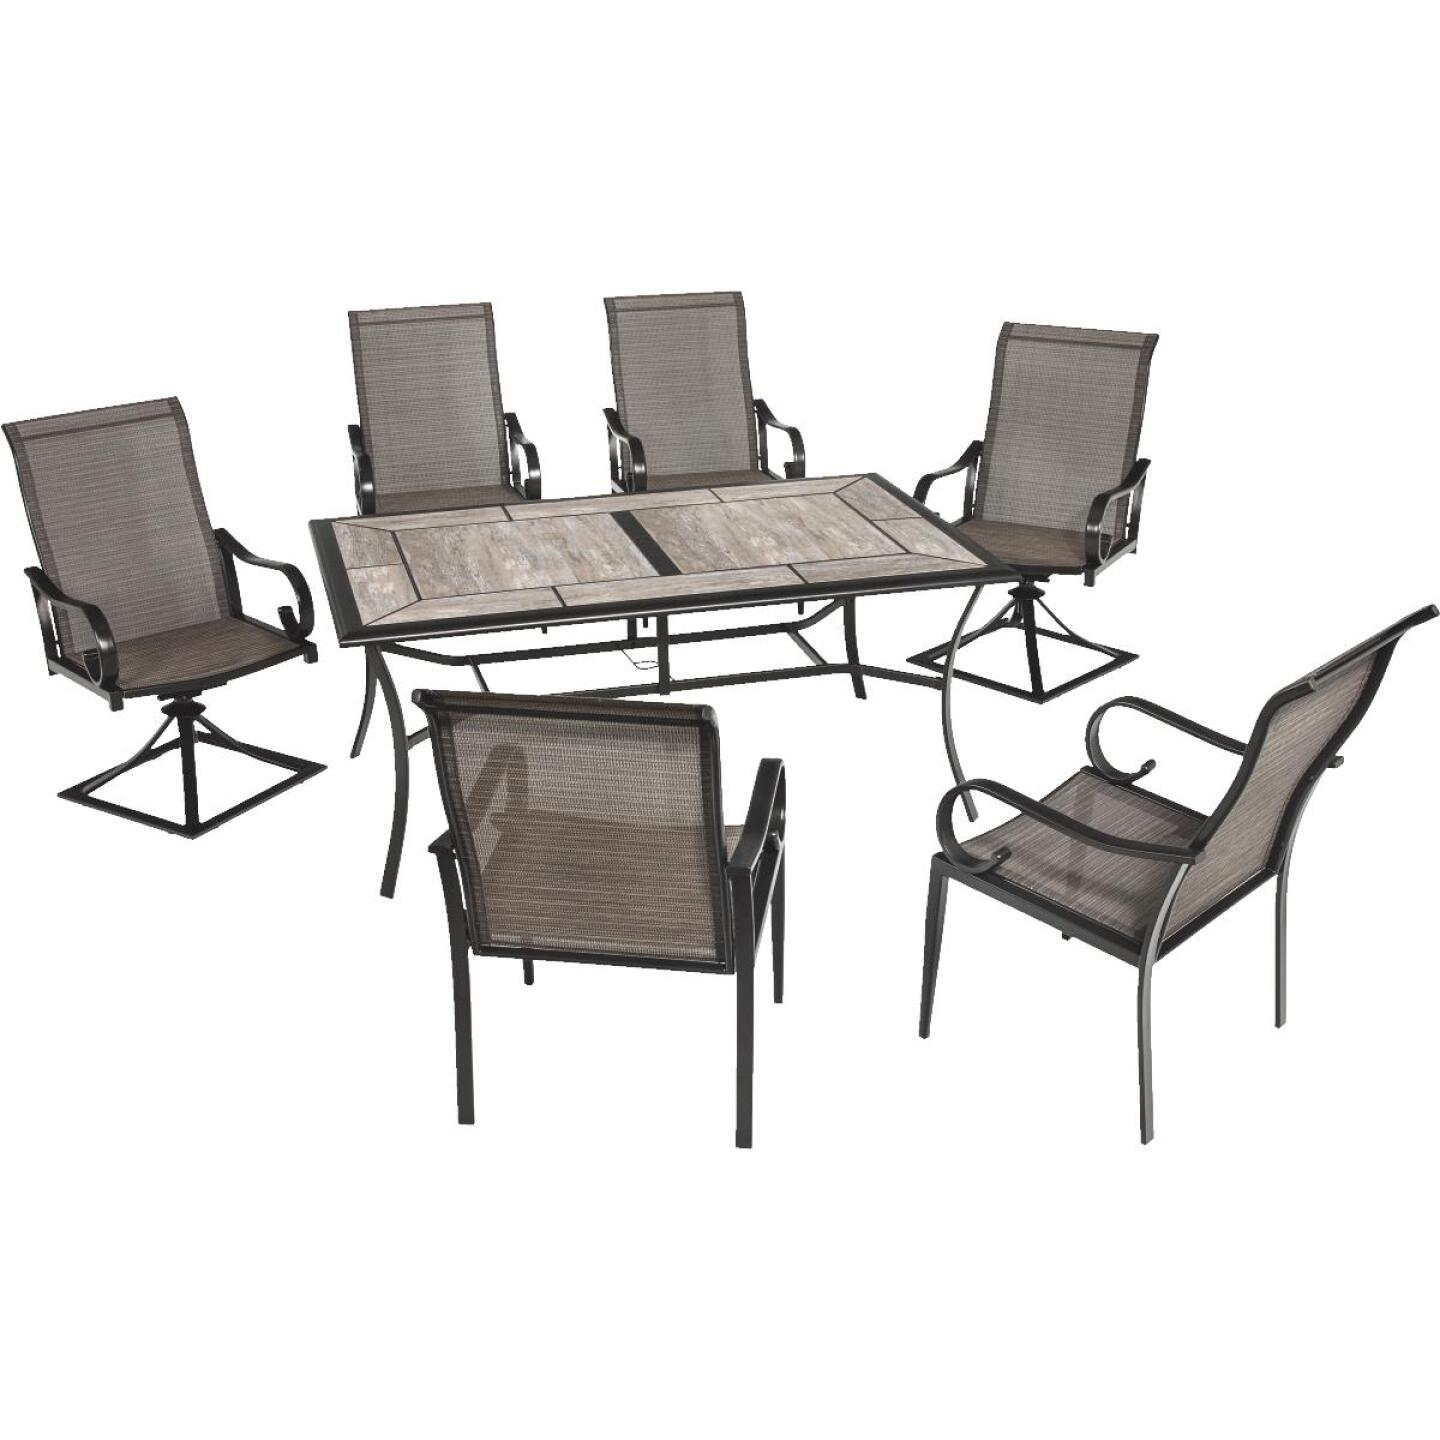 Outdoor Expressions Berkshire 7-Piece Dining Set Image 35